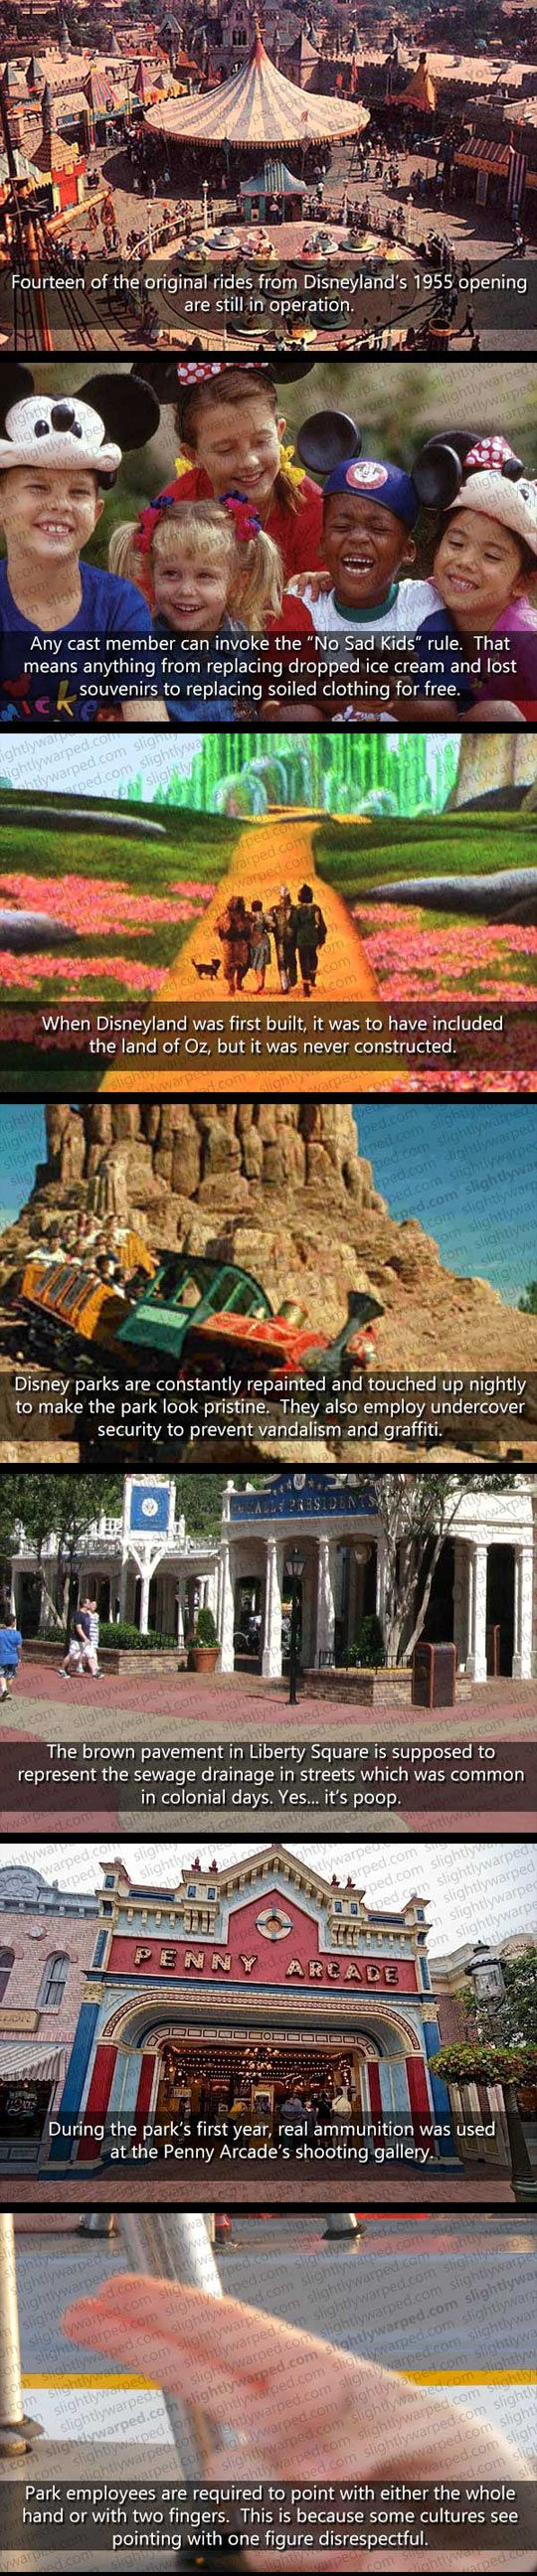 Some fun Disney facts. Some of these I already knew and some of them are new to me.